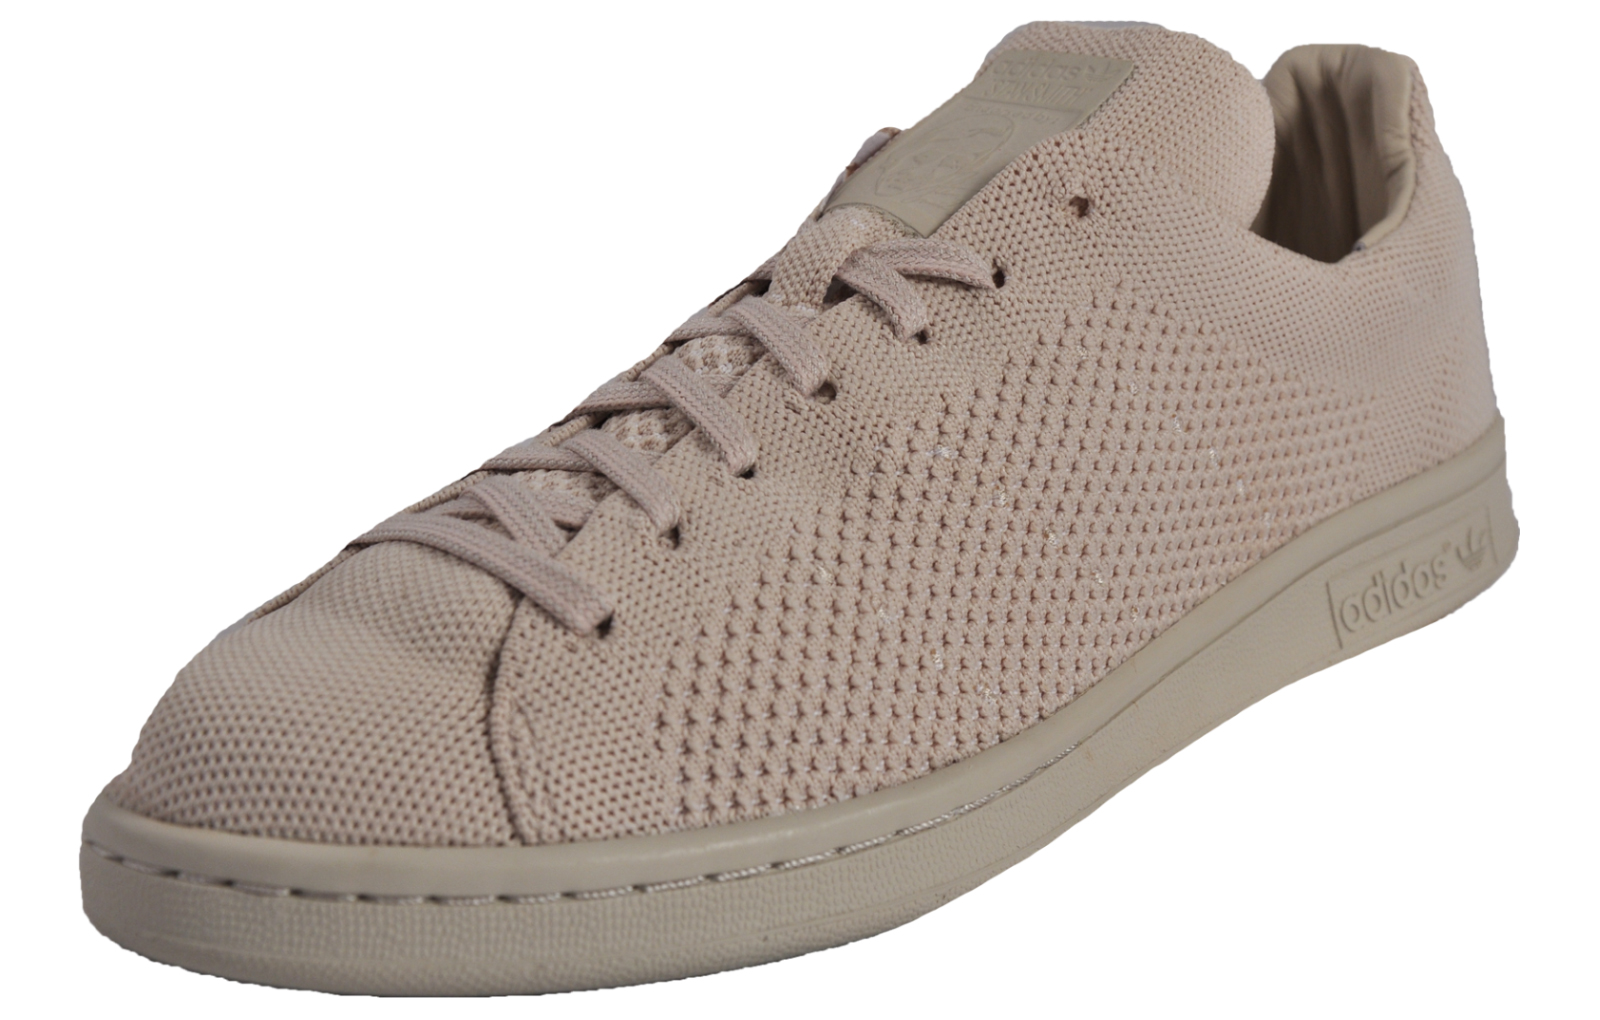 Adidas Originals Stan Smith PK Primeknit Mens  - AD192435